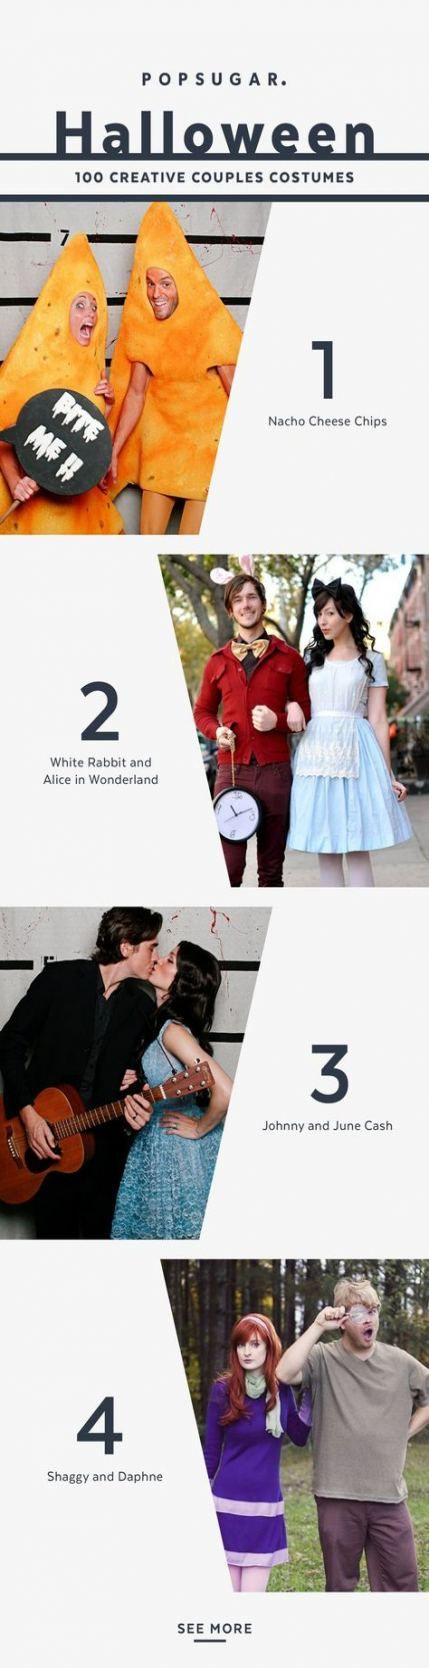 Funny couple games parties halloween costumes 36+ best ideas